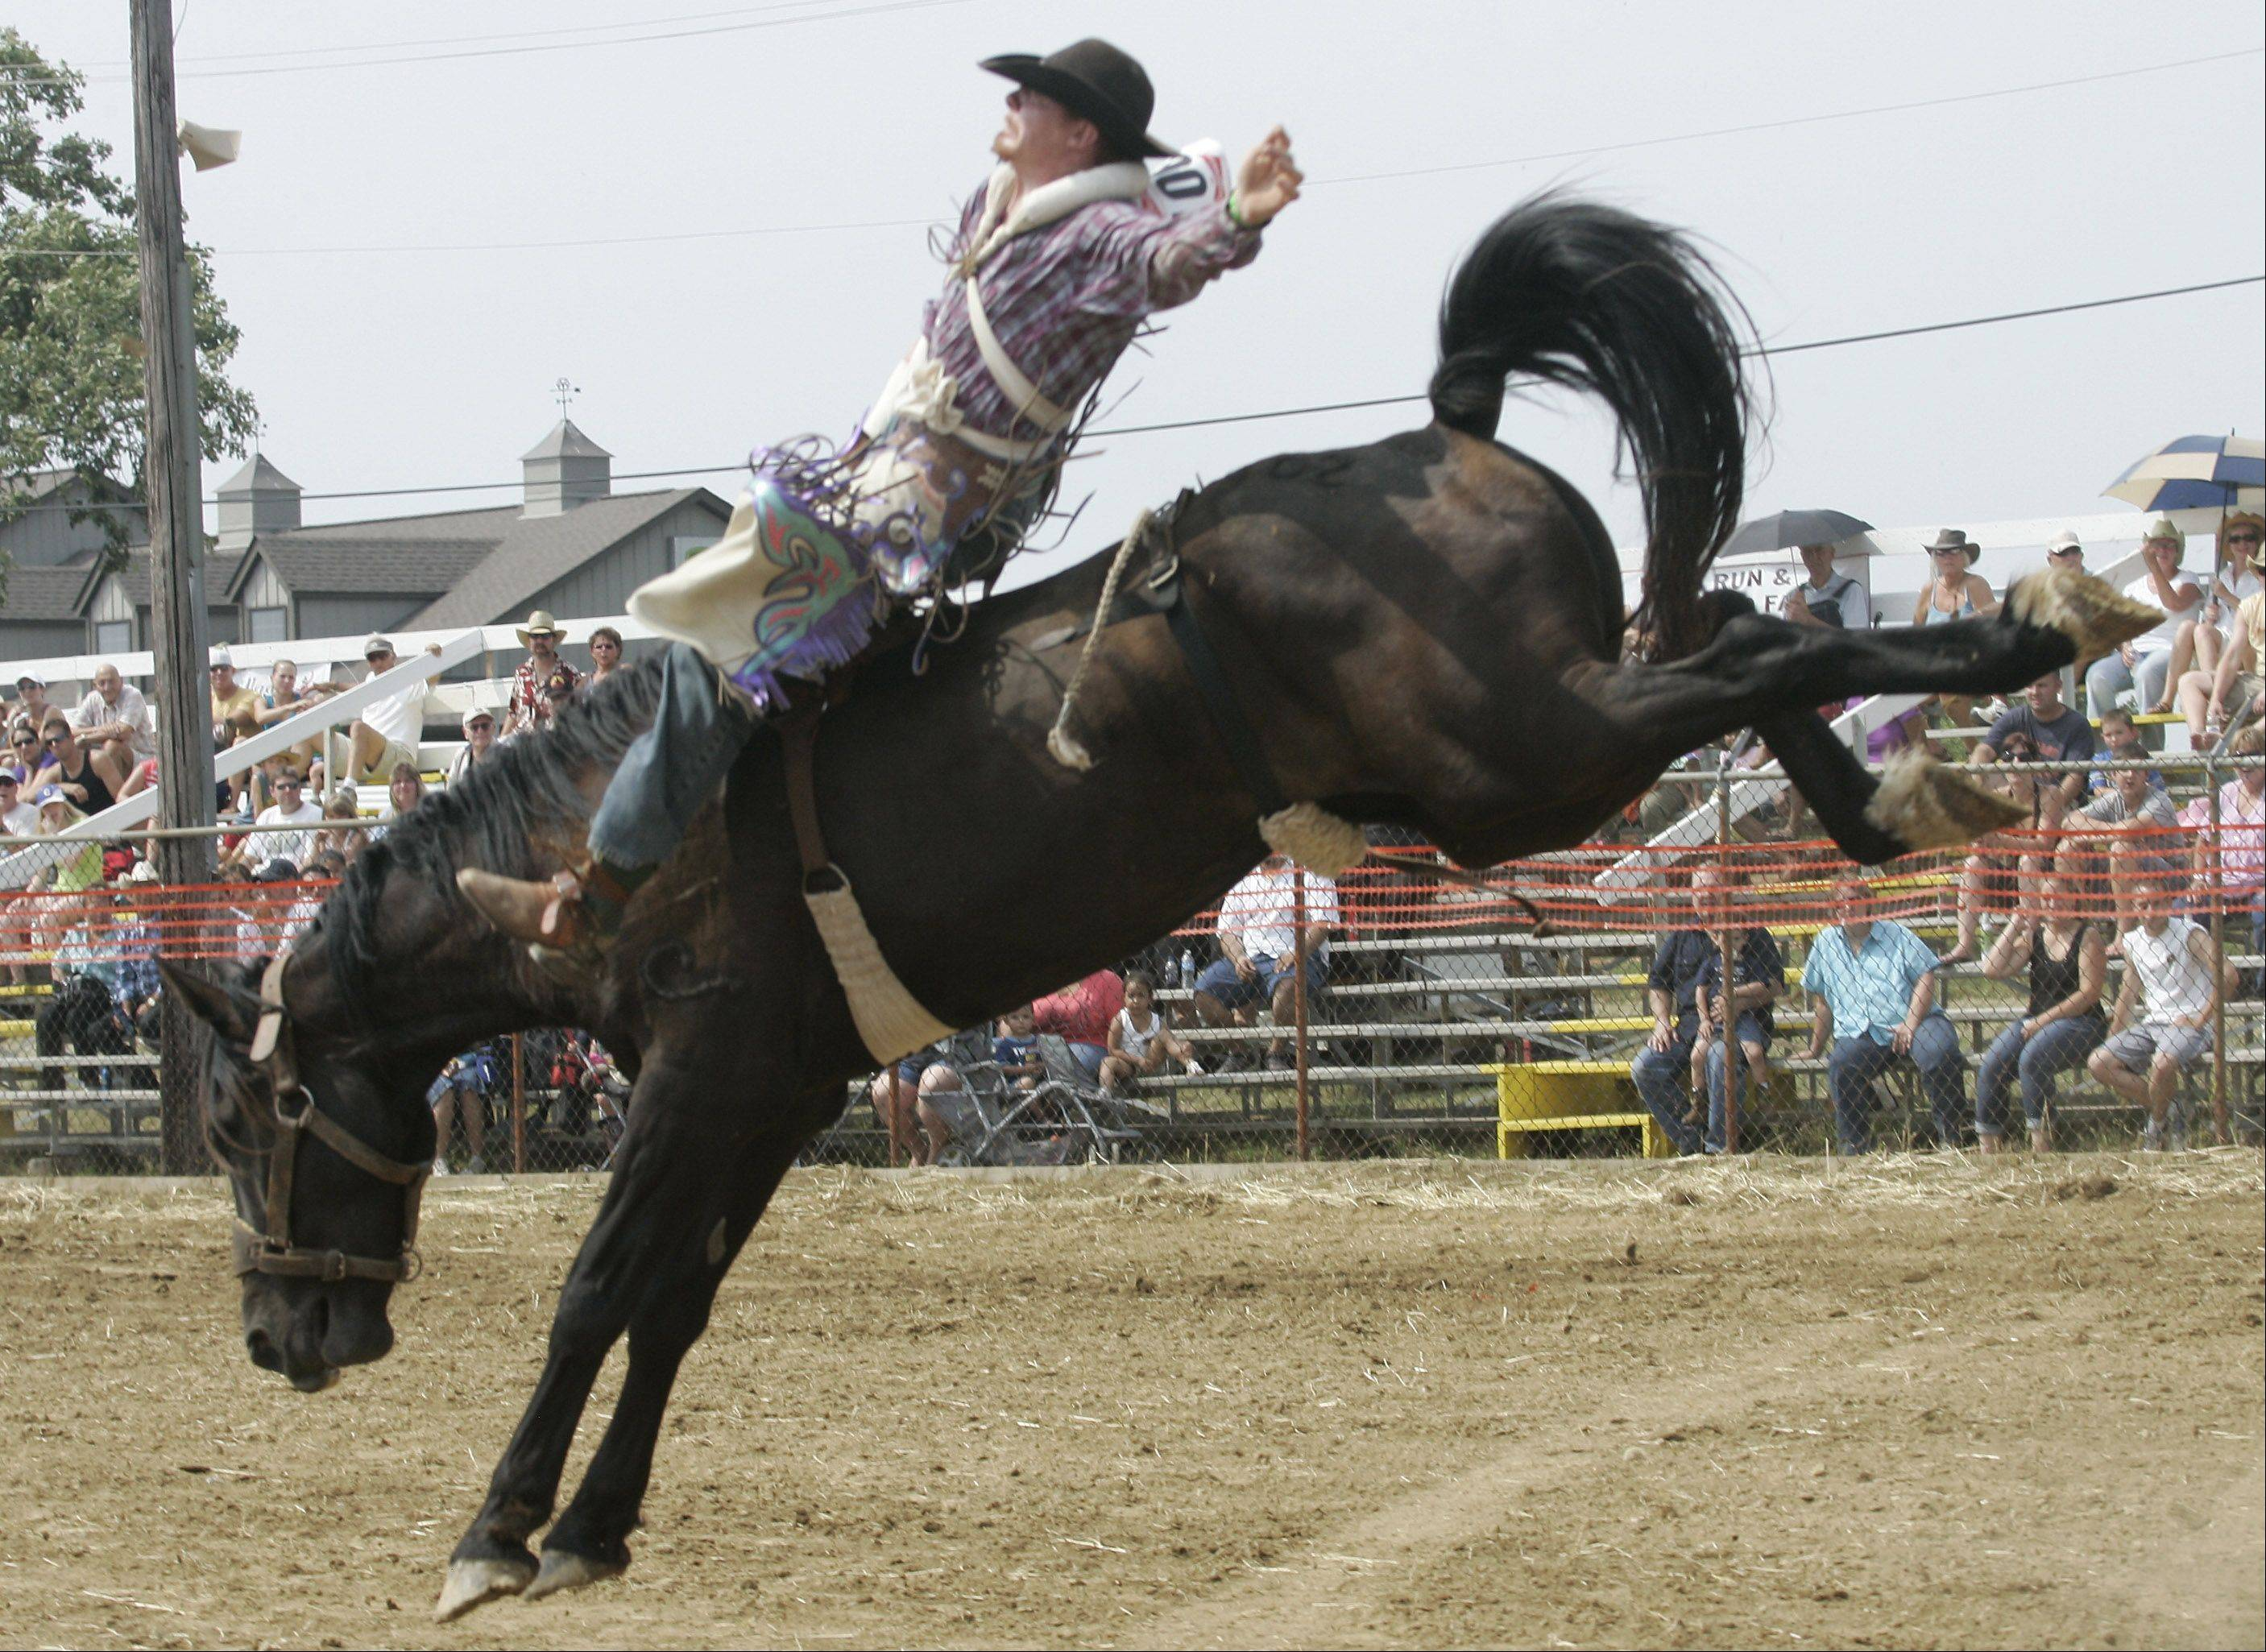 Best bets: Saddle up for IPRA Championship Rodeo